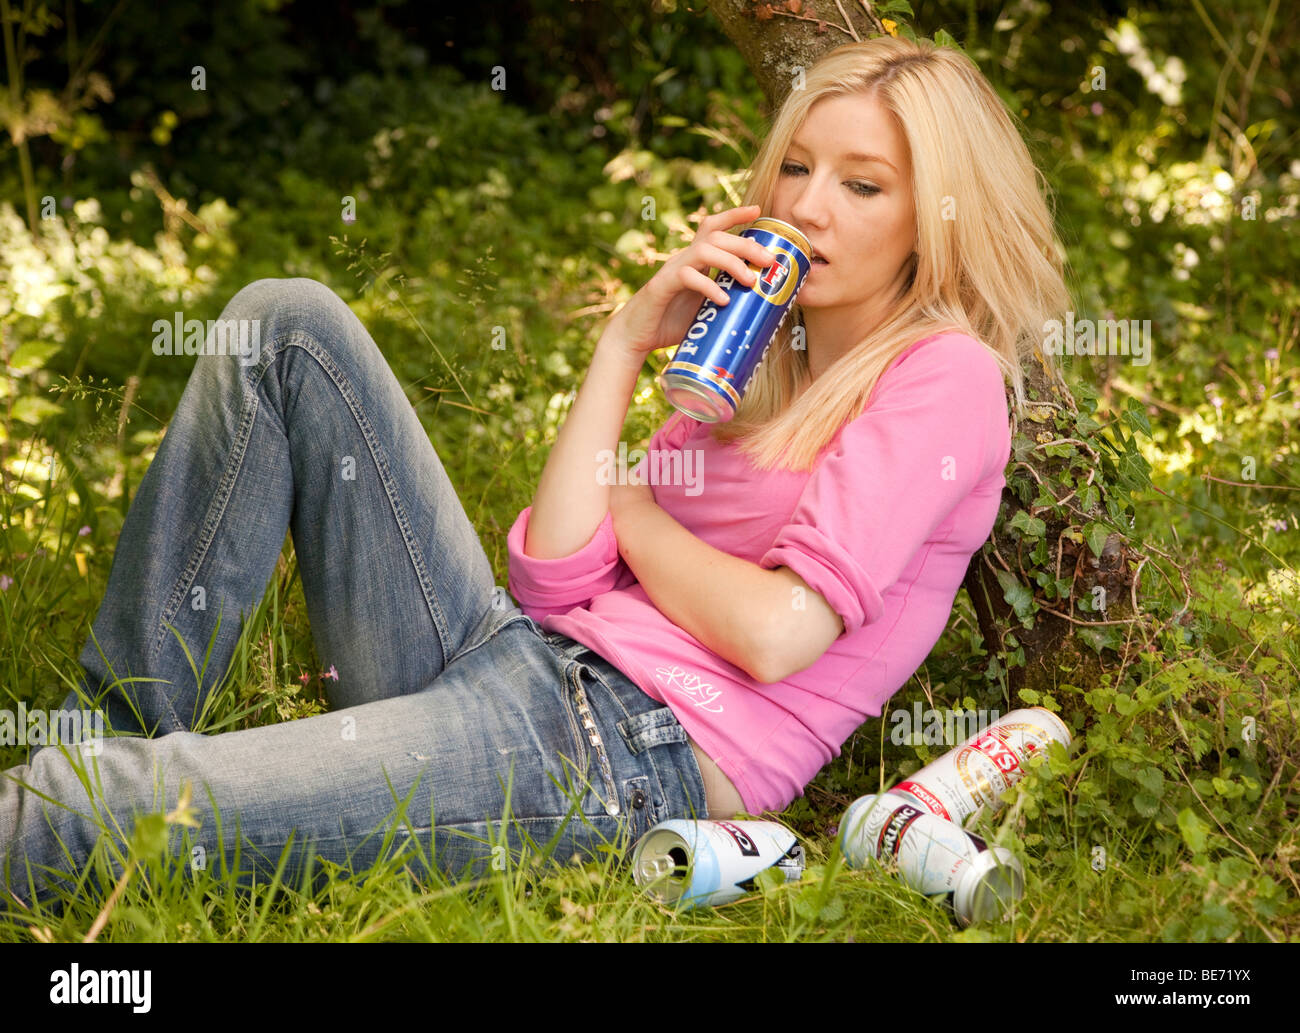 young woman drinking alcohol - Stock Image